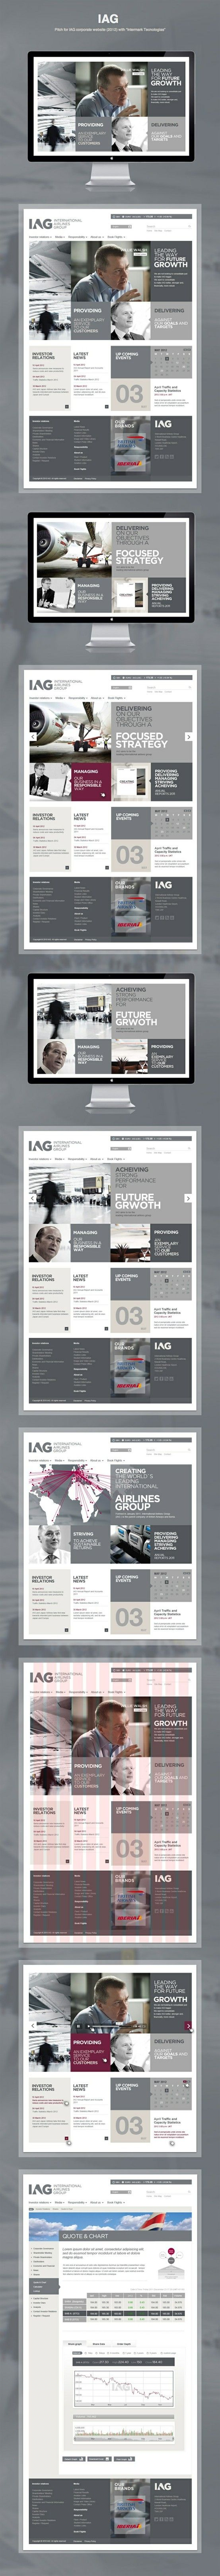 IAG - International Airlines Group | http://www.iairgroup.com | #Webdesign